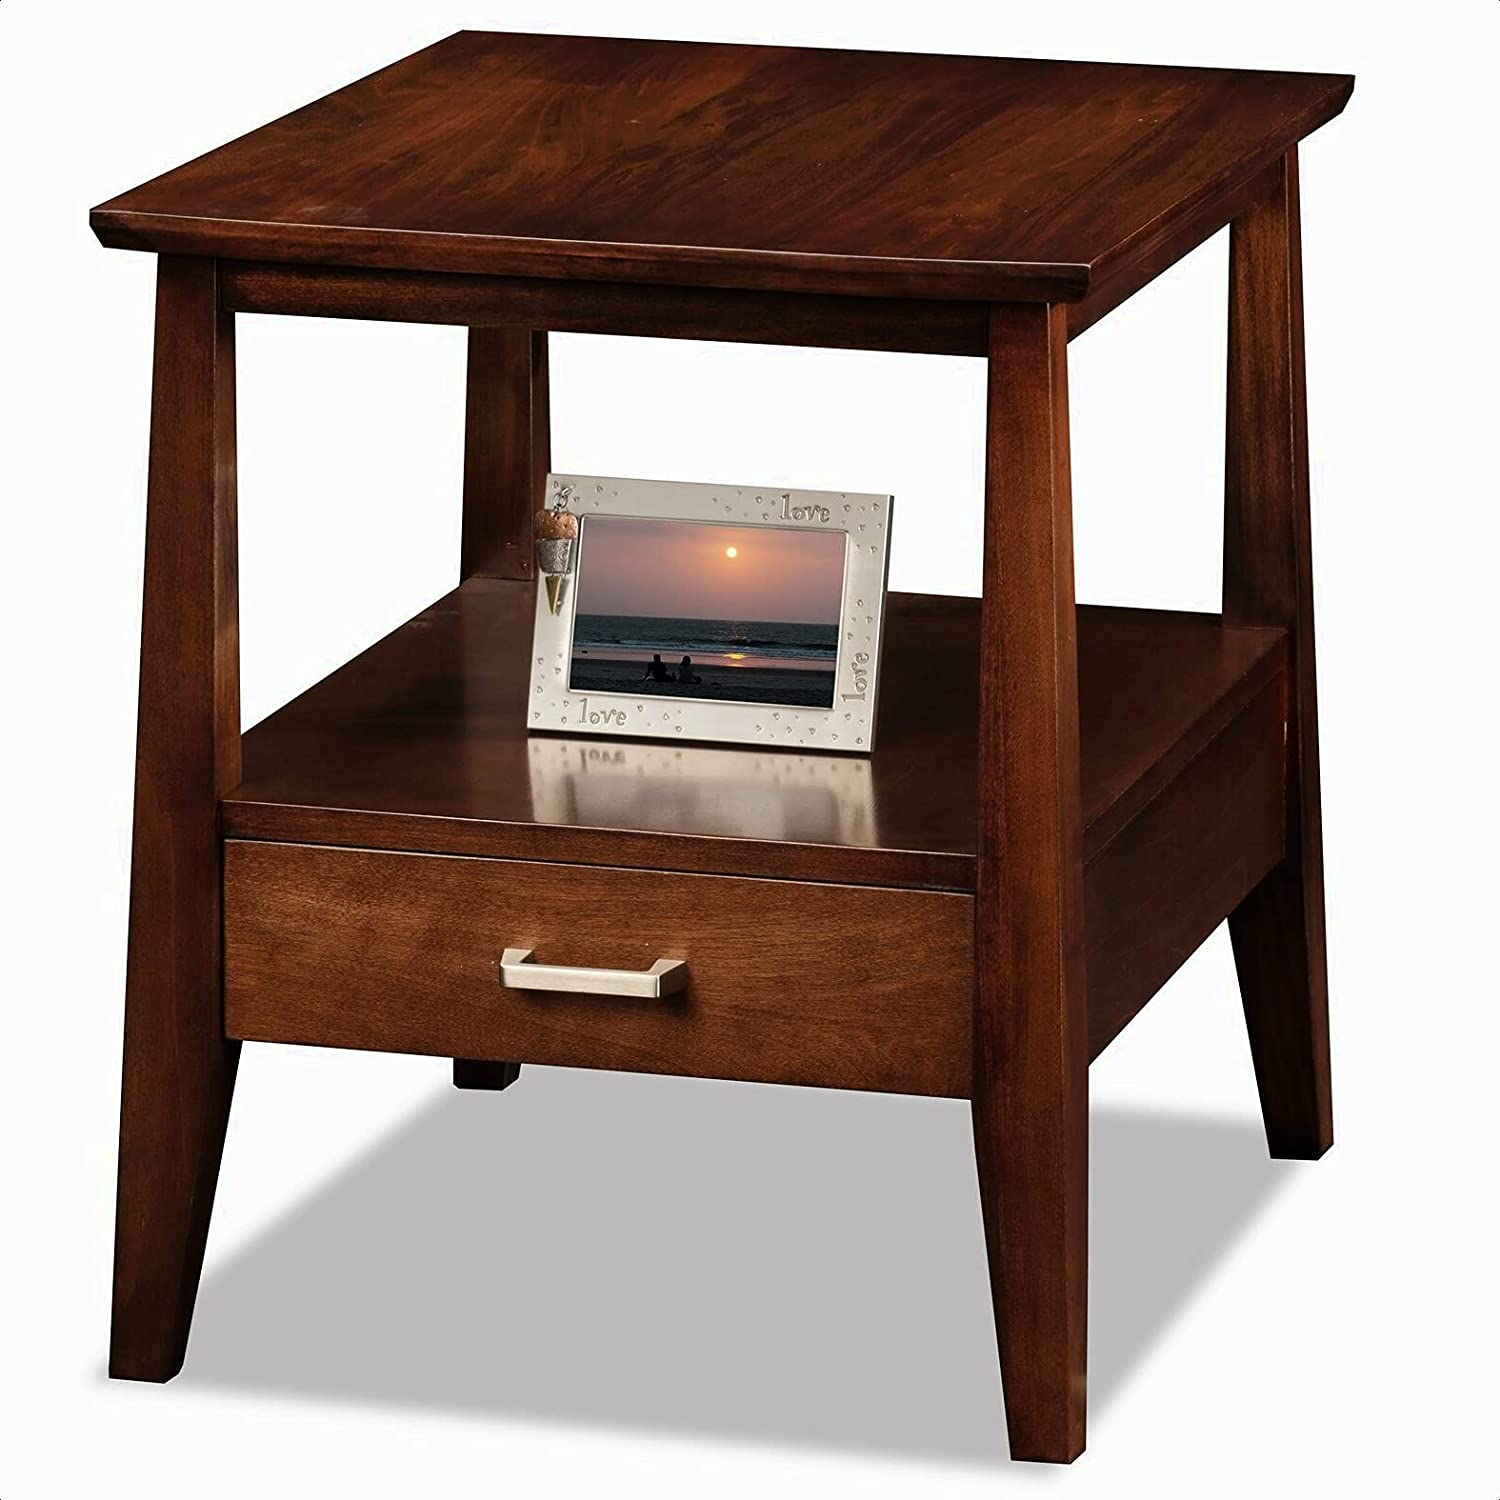 Hazleton End Table with Storage Drawer 11 Fixed price for sale x H New sales 3.5'''' Interior: